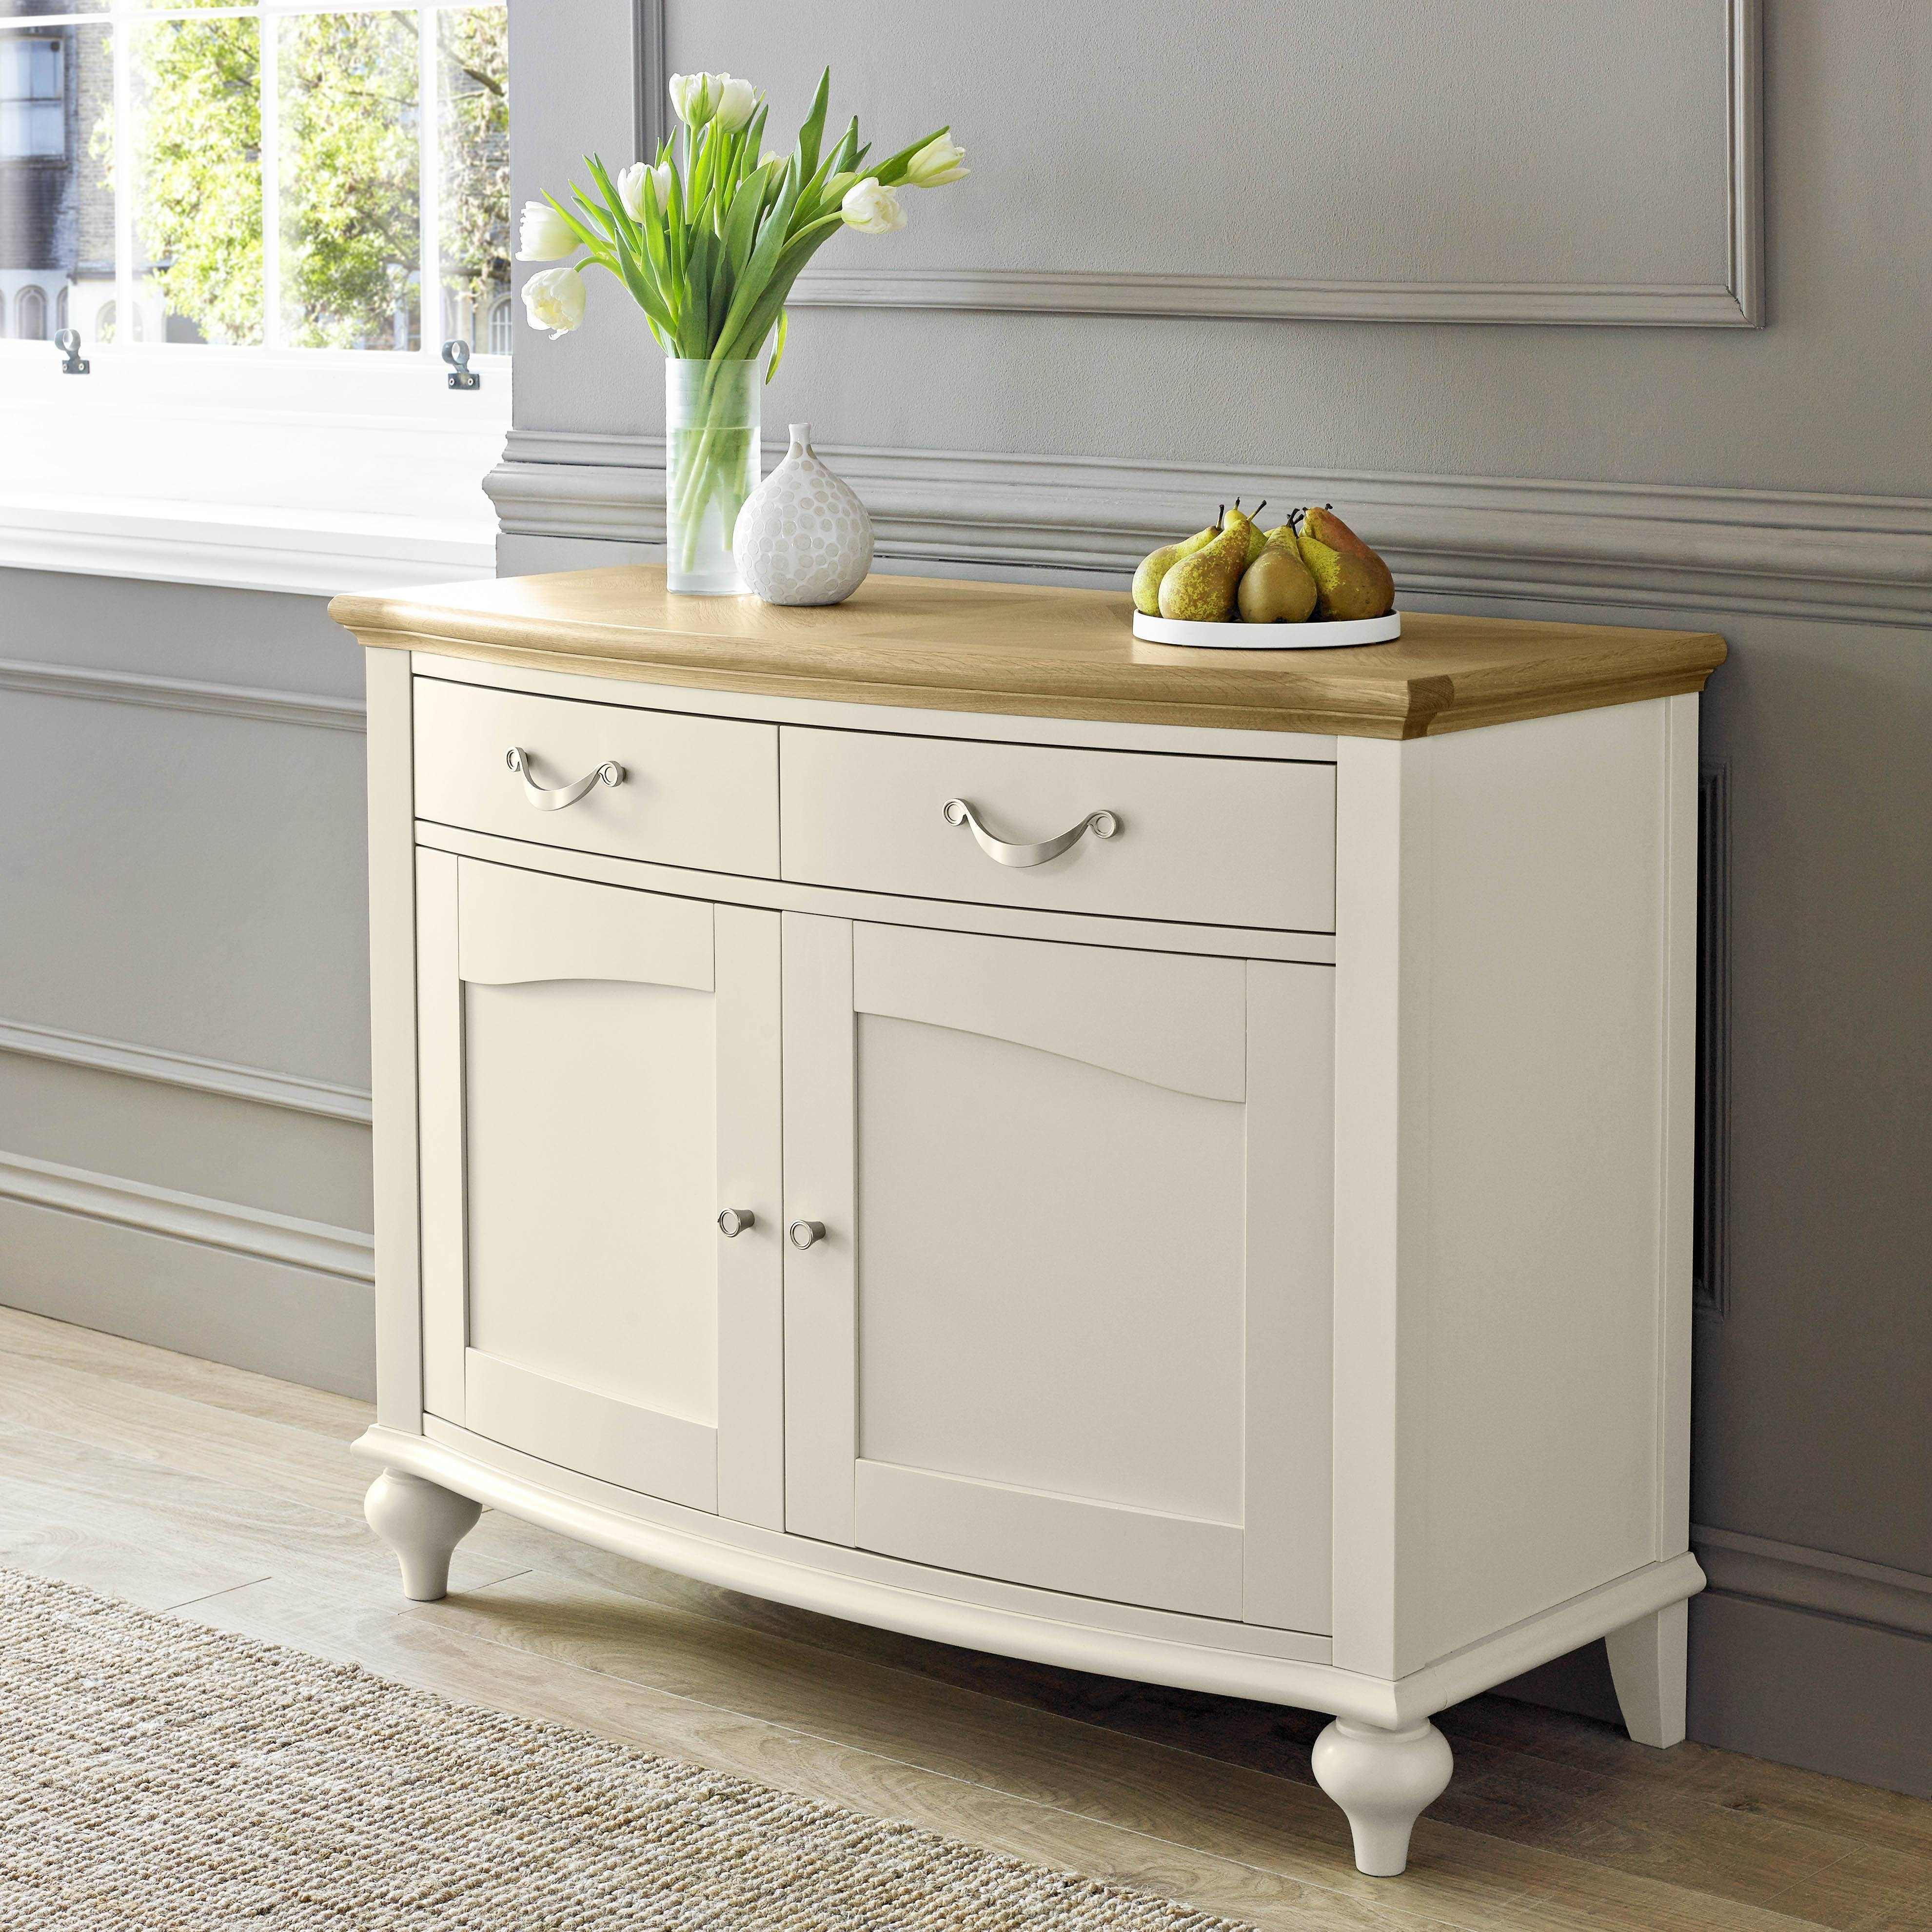 Tuscany Pale Oak & Antique White Narrow Sideboard With Narrow Sideboards (View 16 of 20)